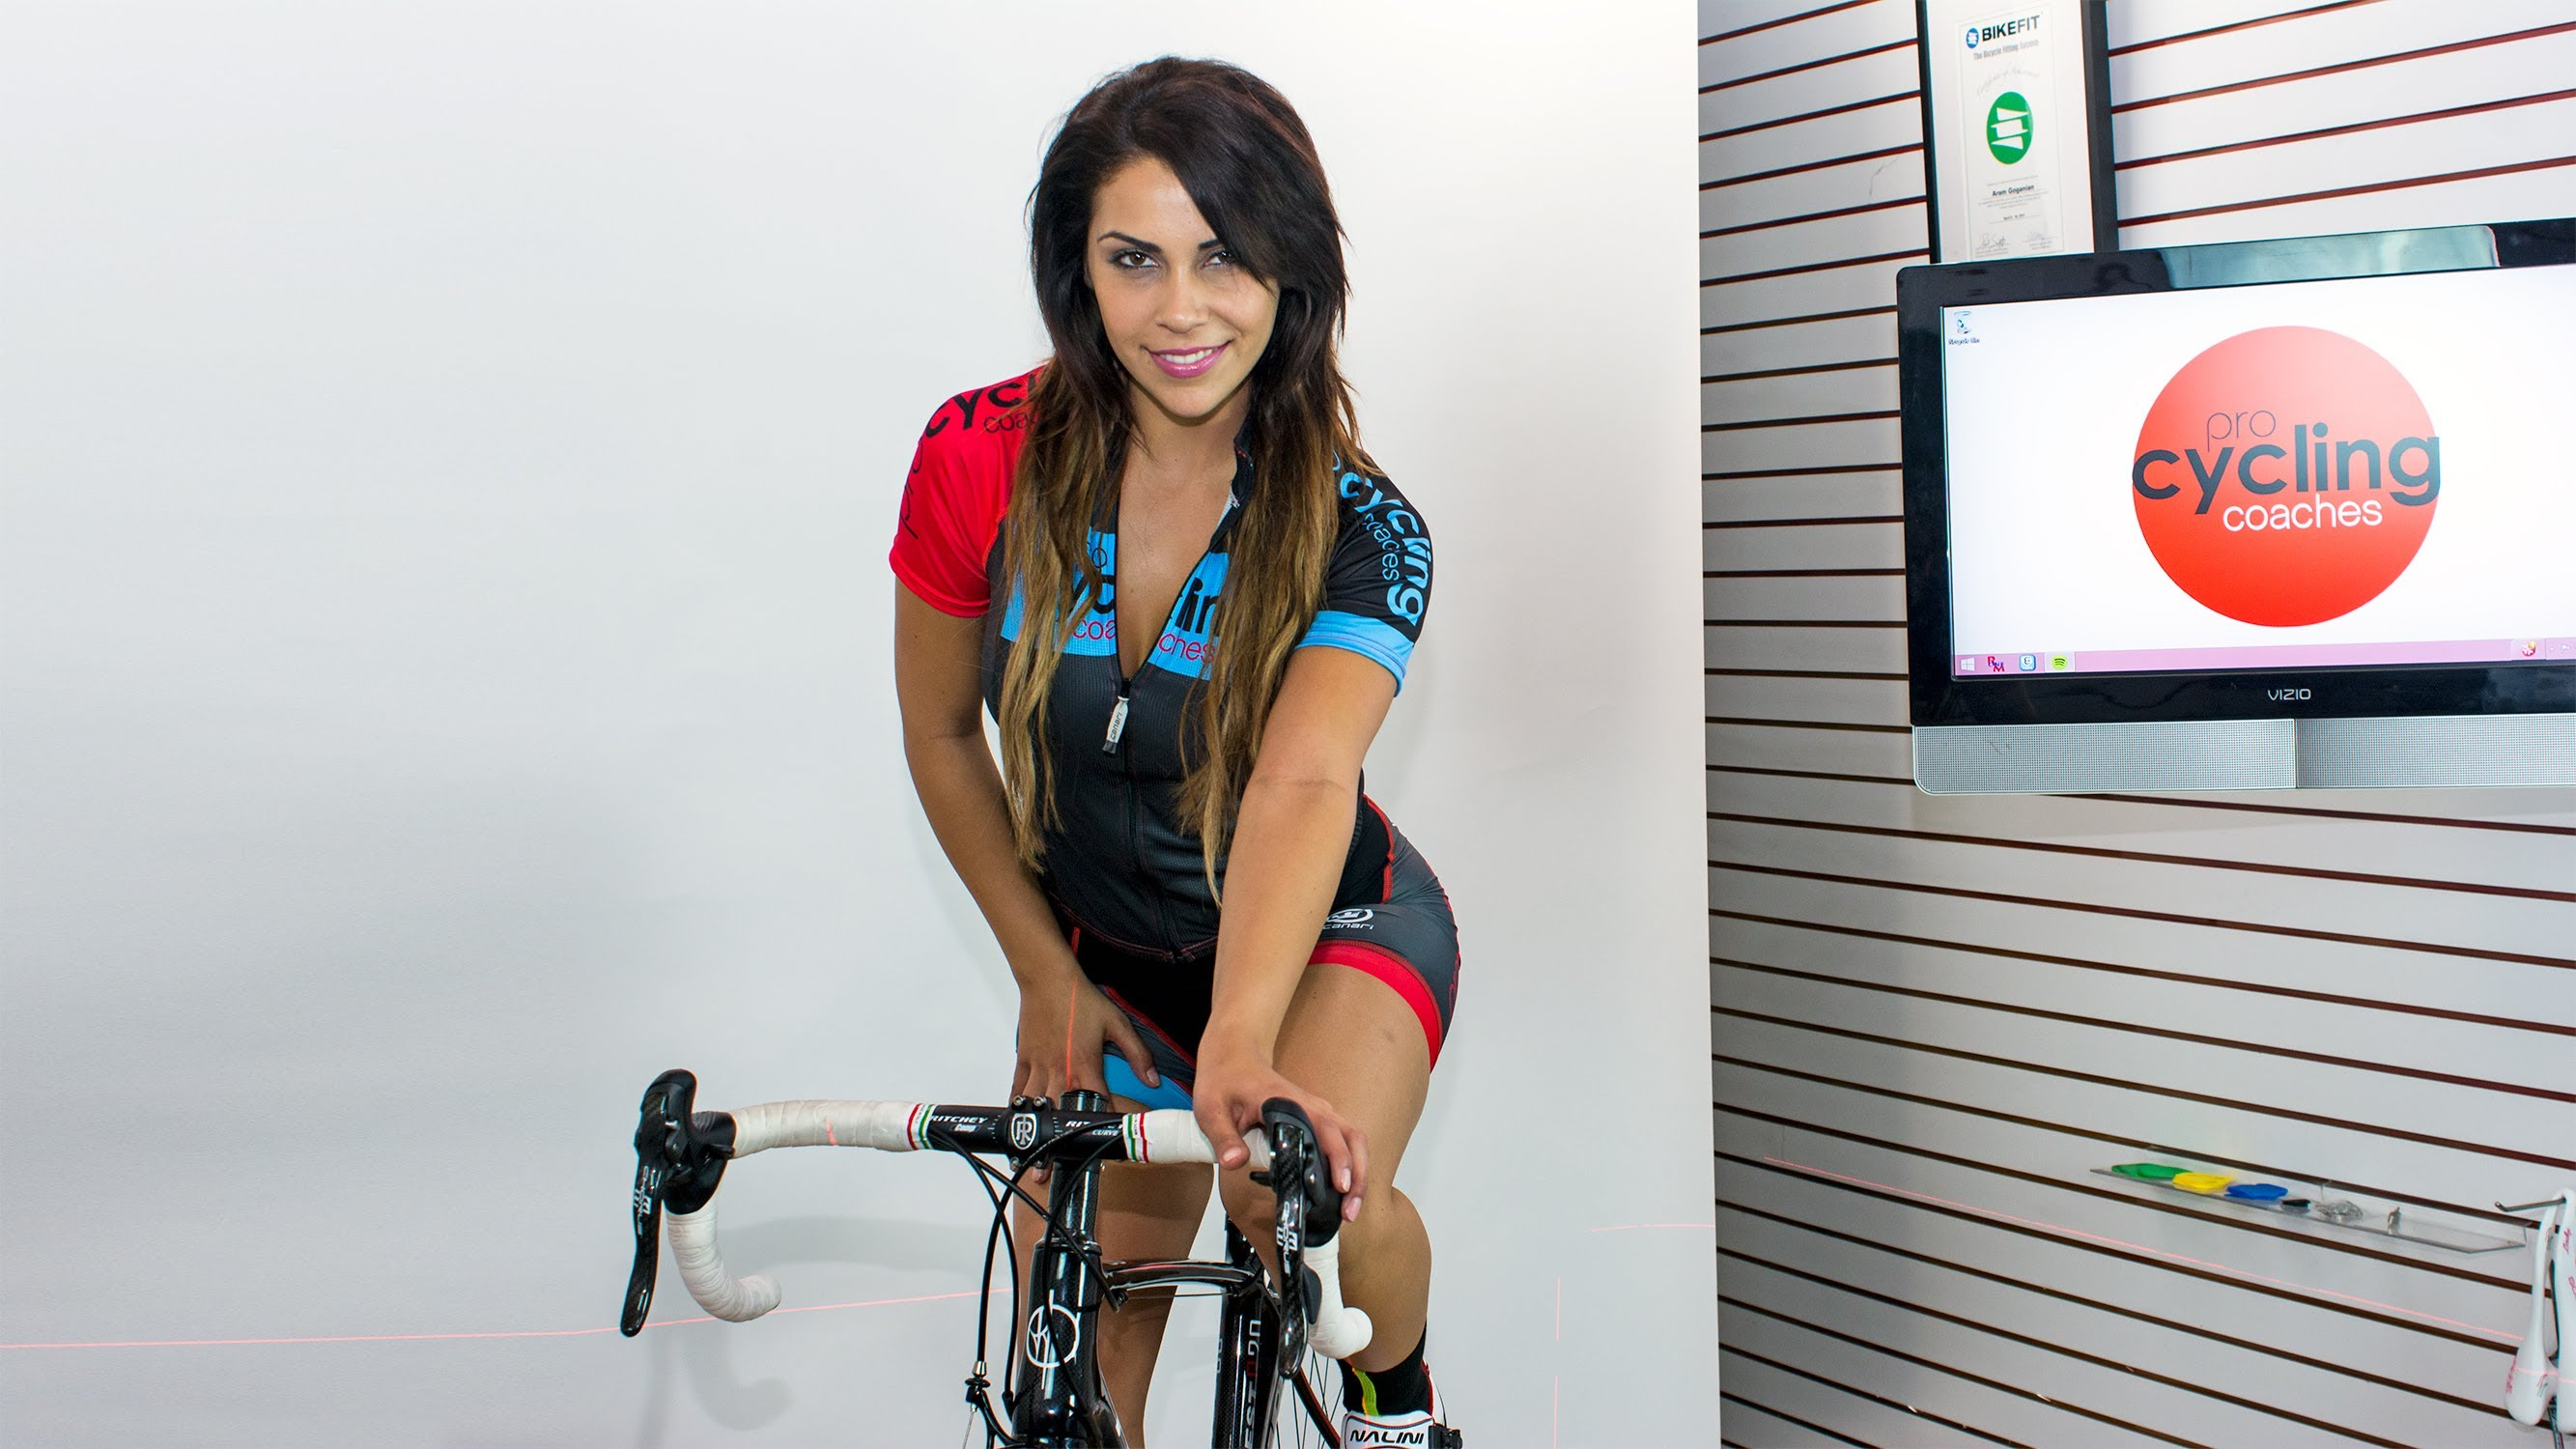 This Educational Bike Fit Video Through Pro Cycling Coaches